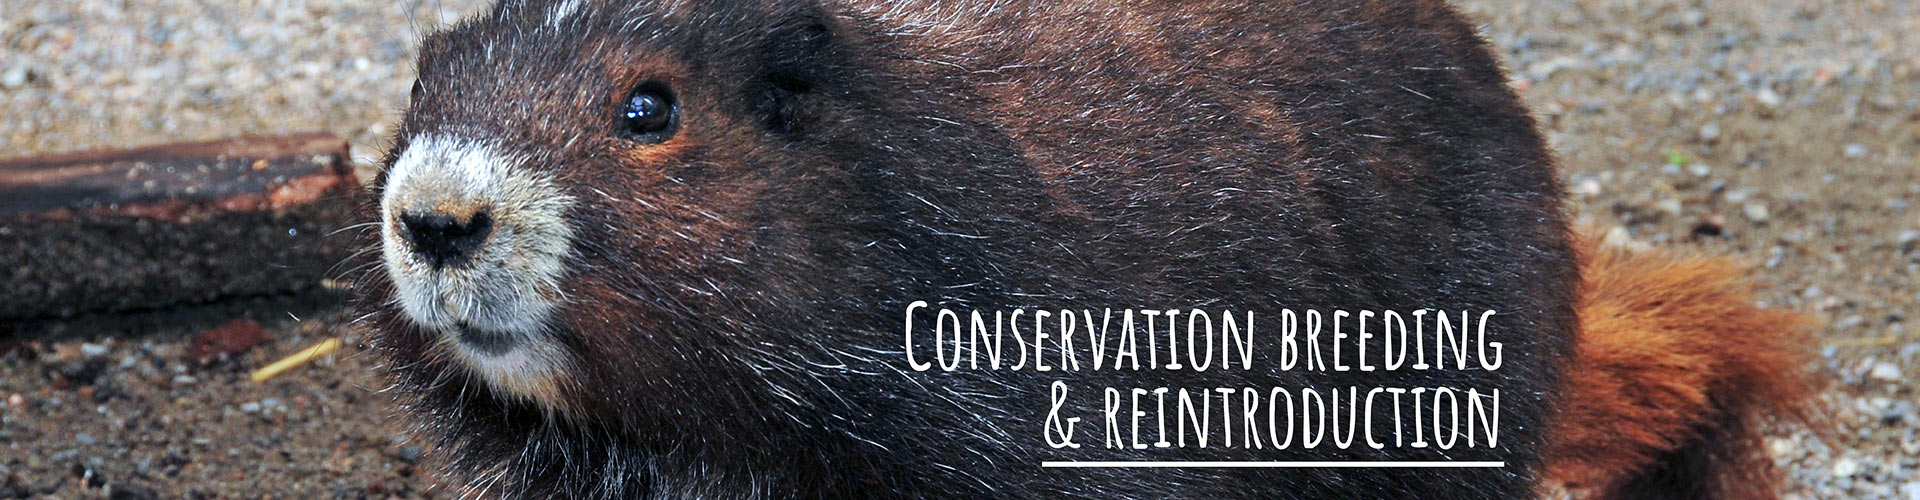 Conservation Breeding and Reintroduction - PCT